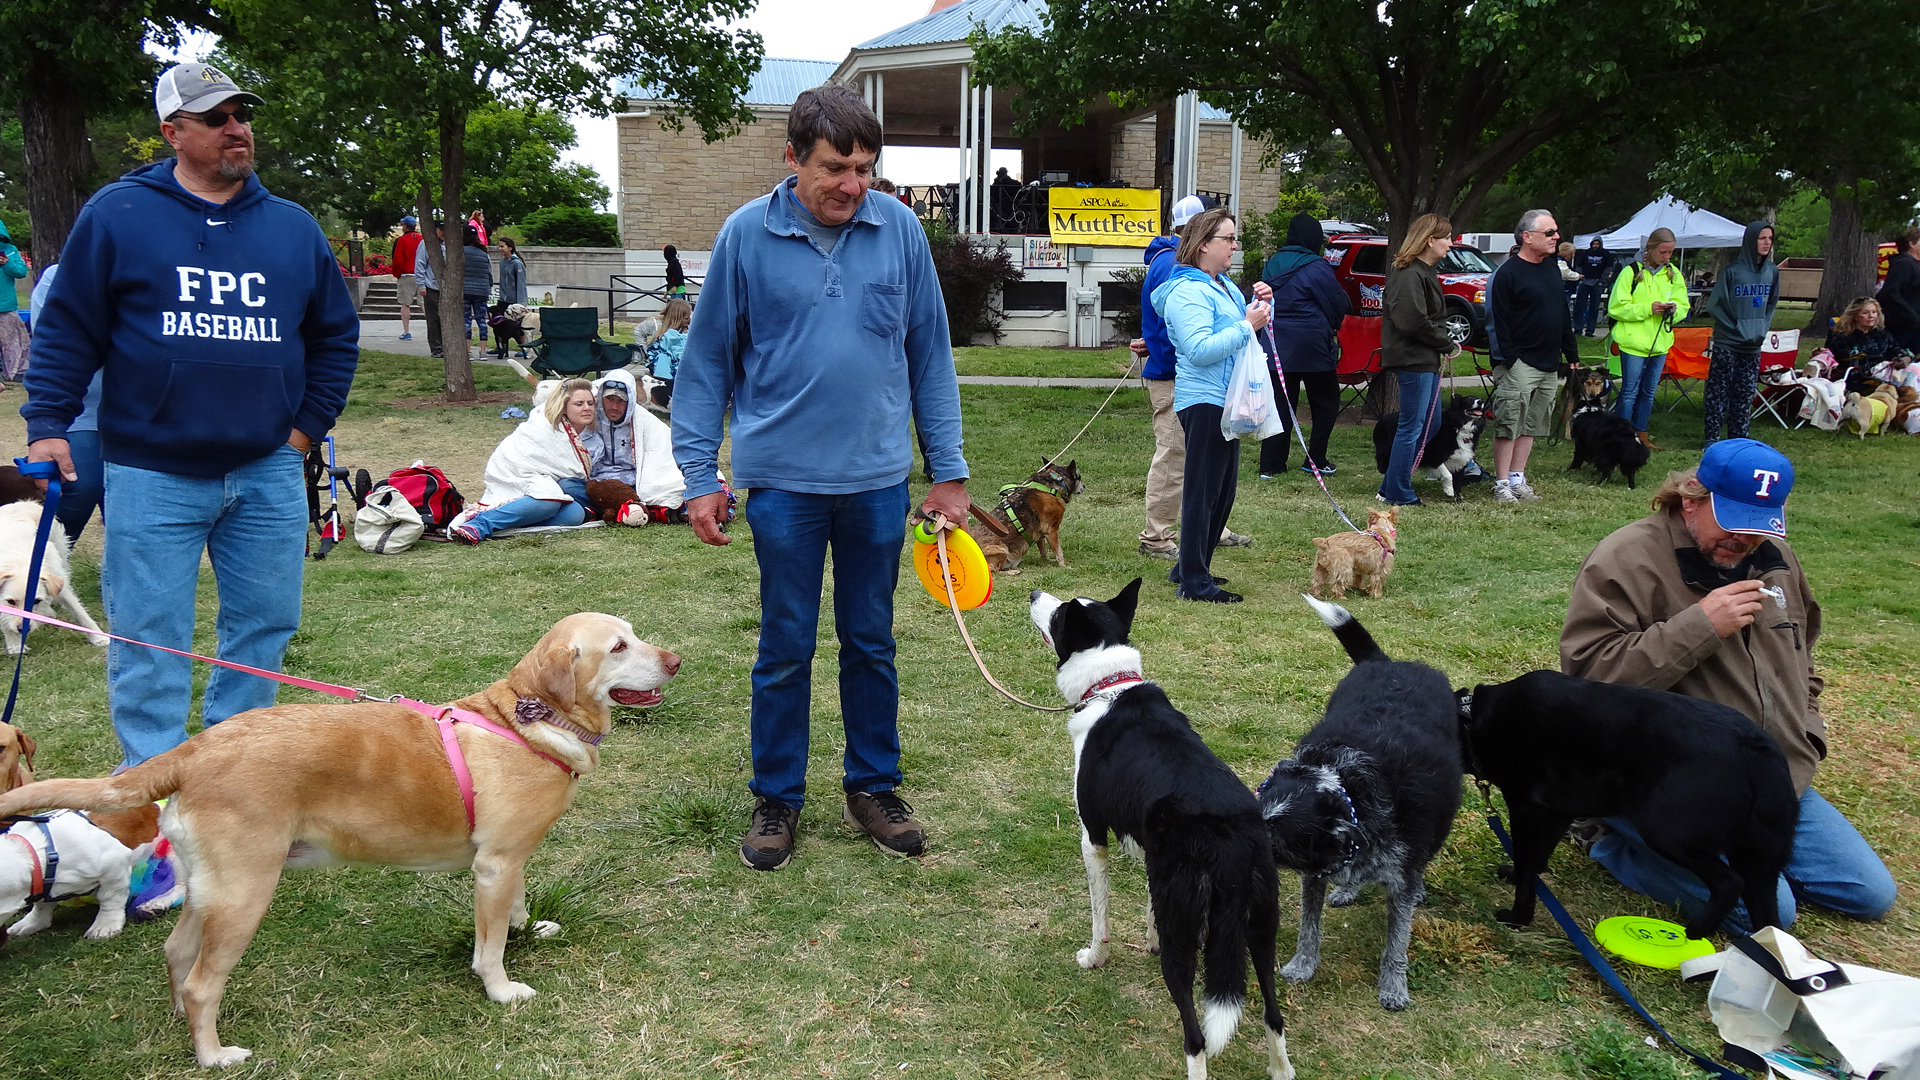 Amarillo's going to the dogs again with annual Muttfest celebration